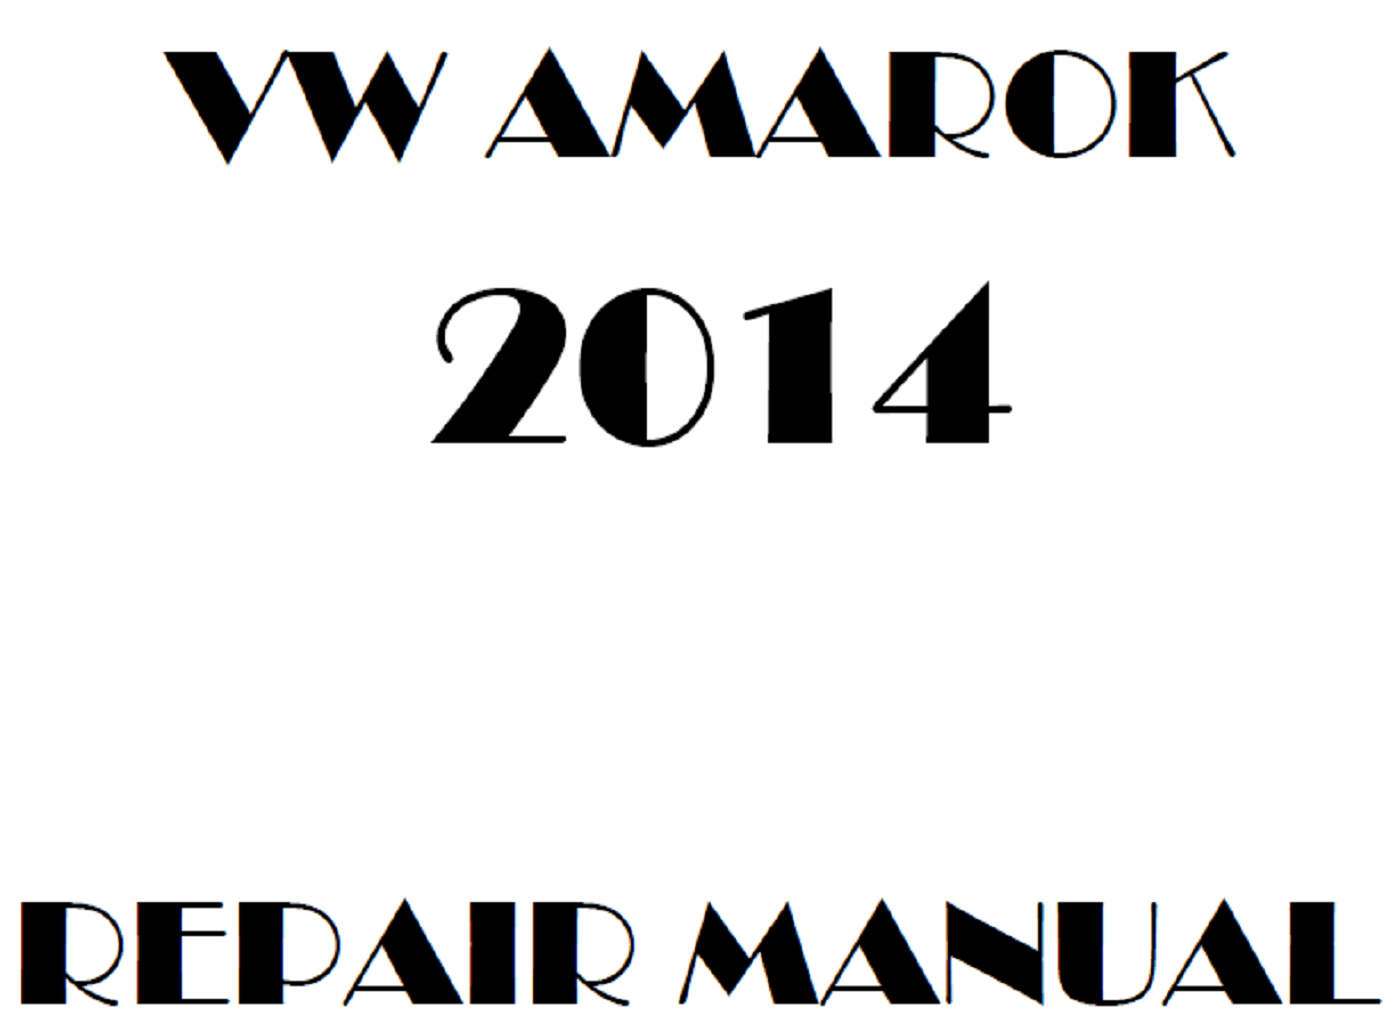 2014 Volkswagen Amarok repair manual